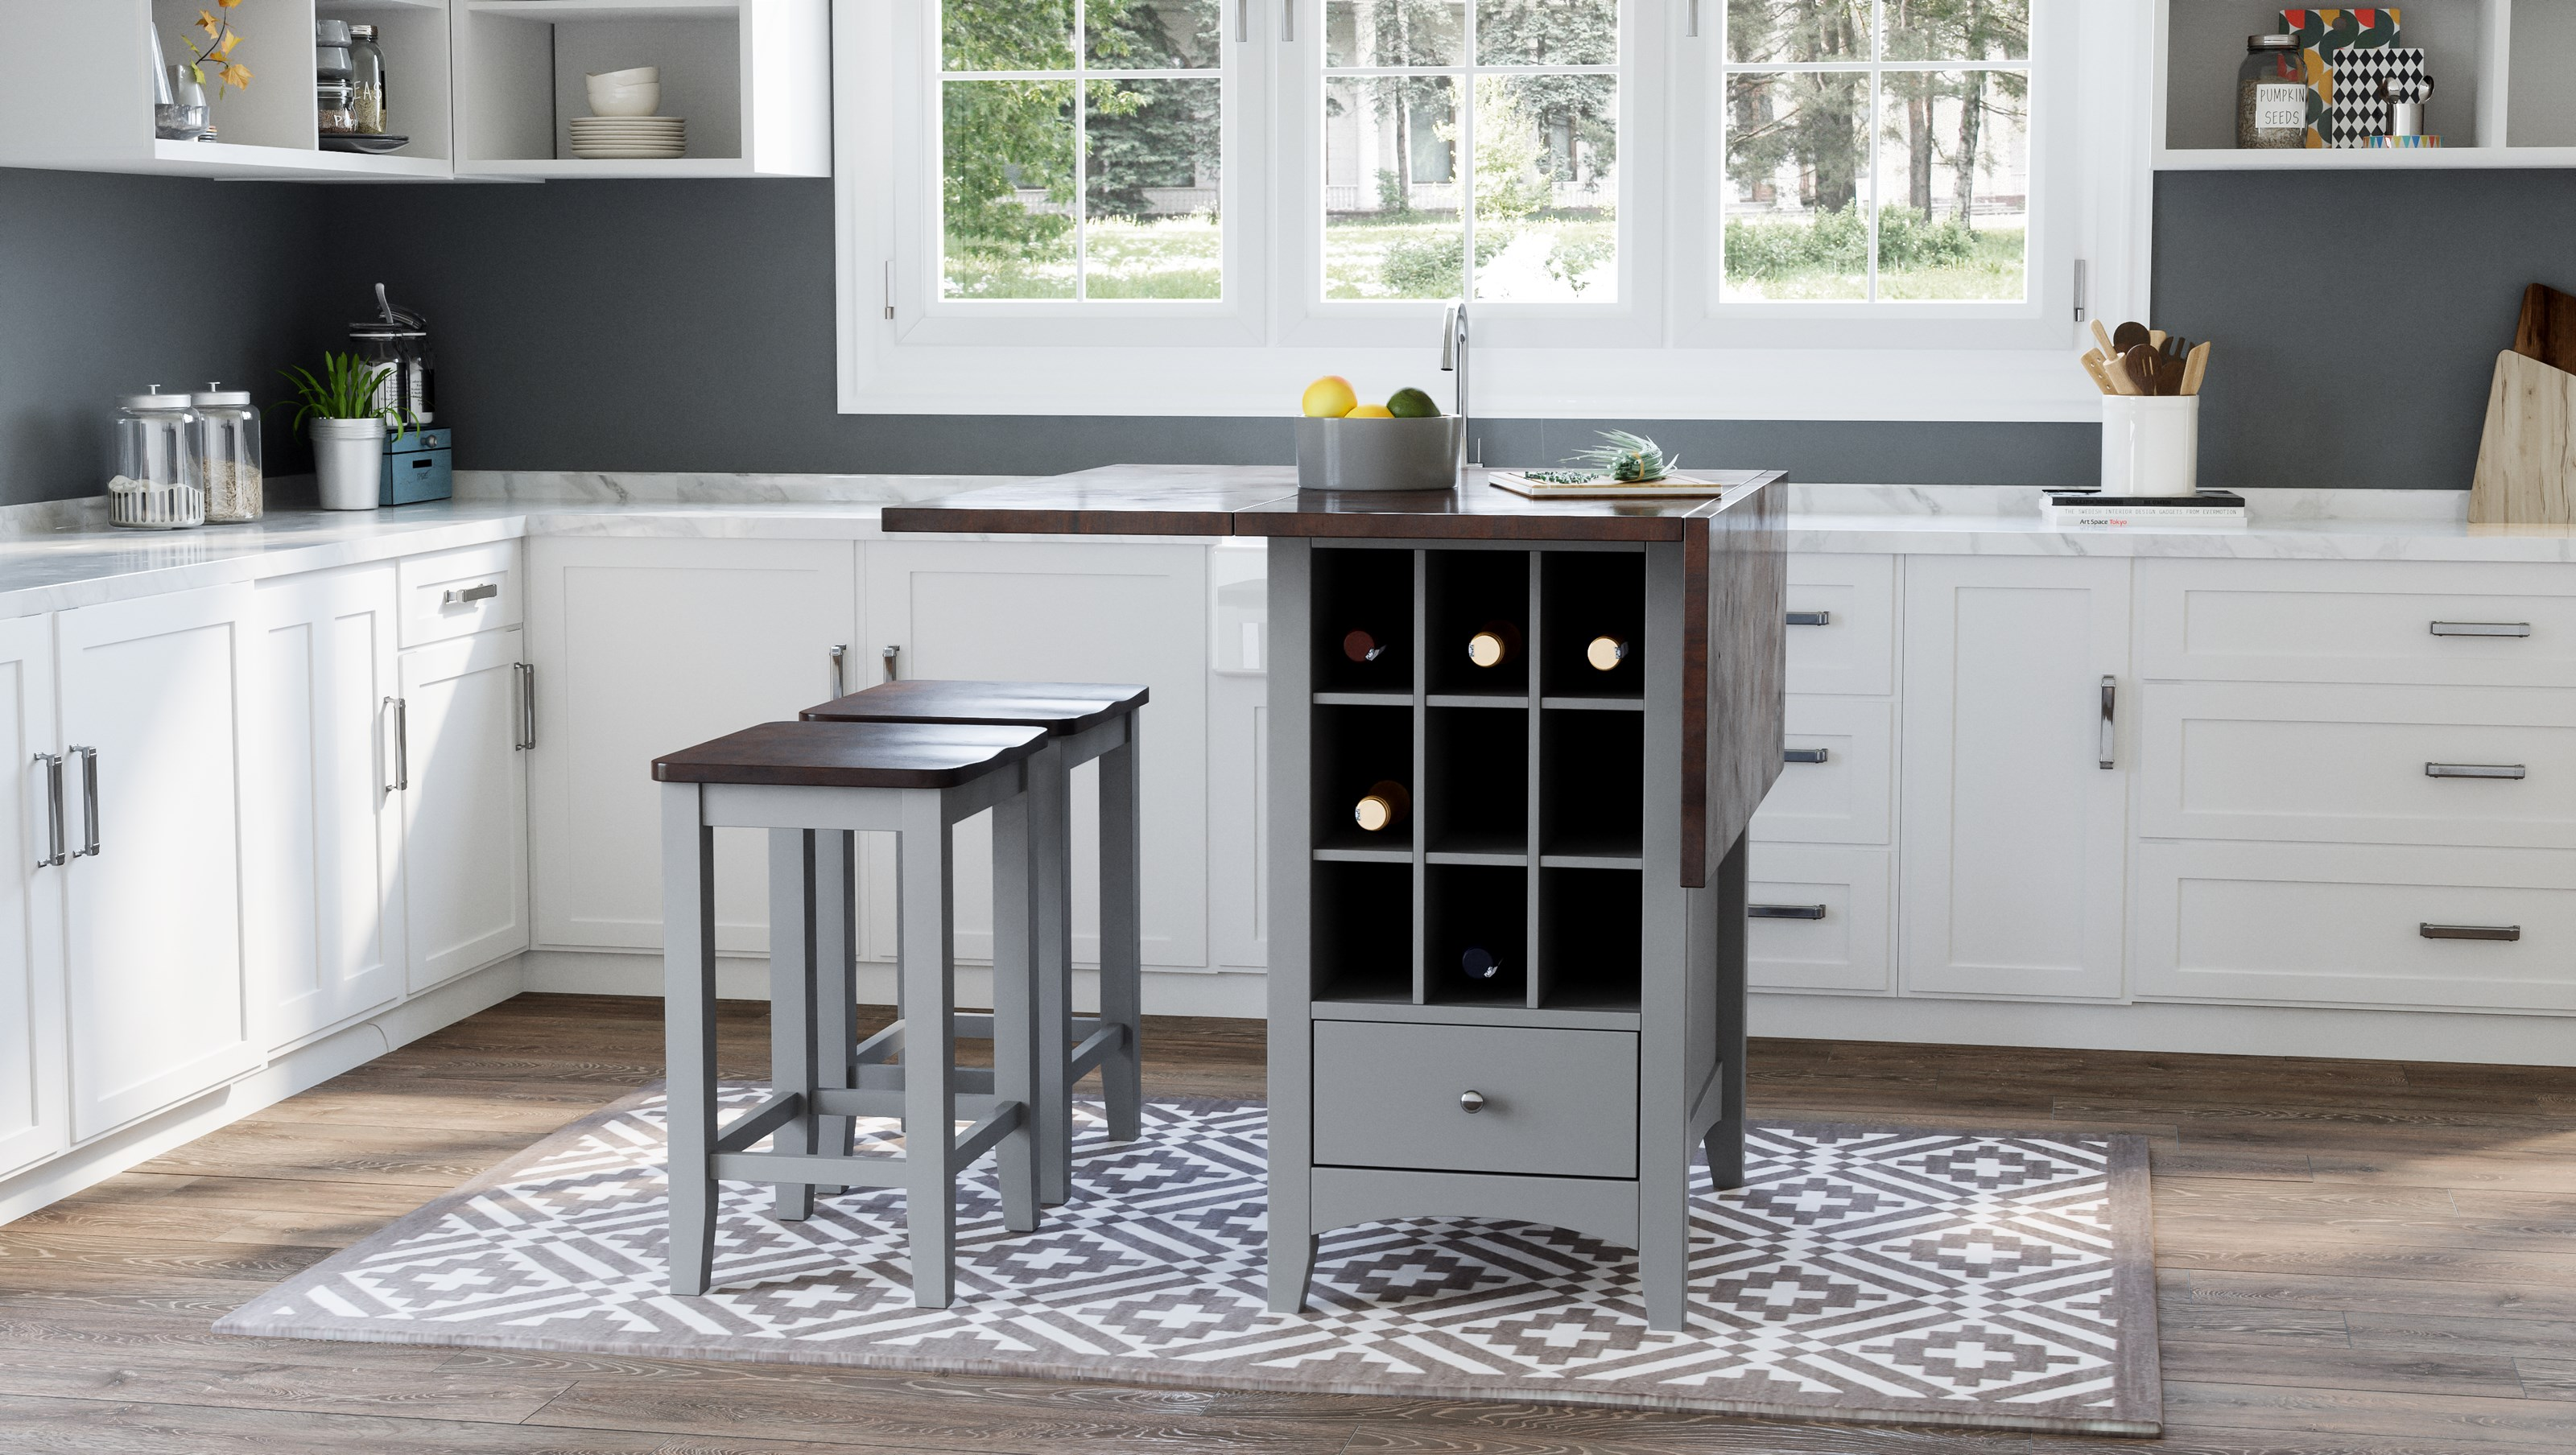 Asbury Park 3-Piece Counter Height Table and Stool Set by Jofran at Zak's Home